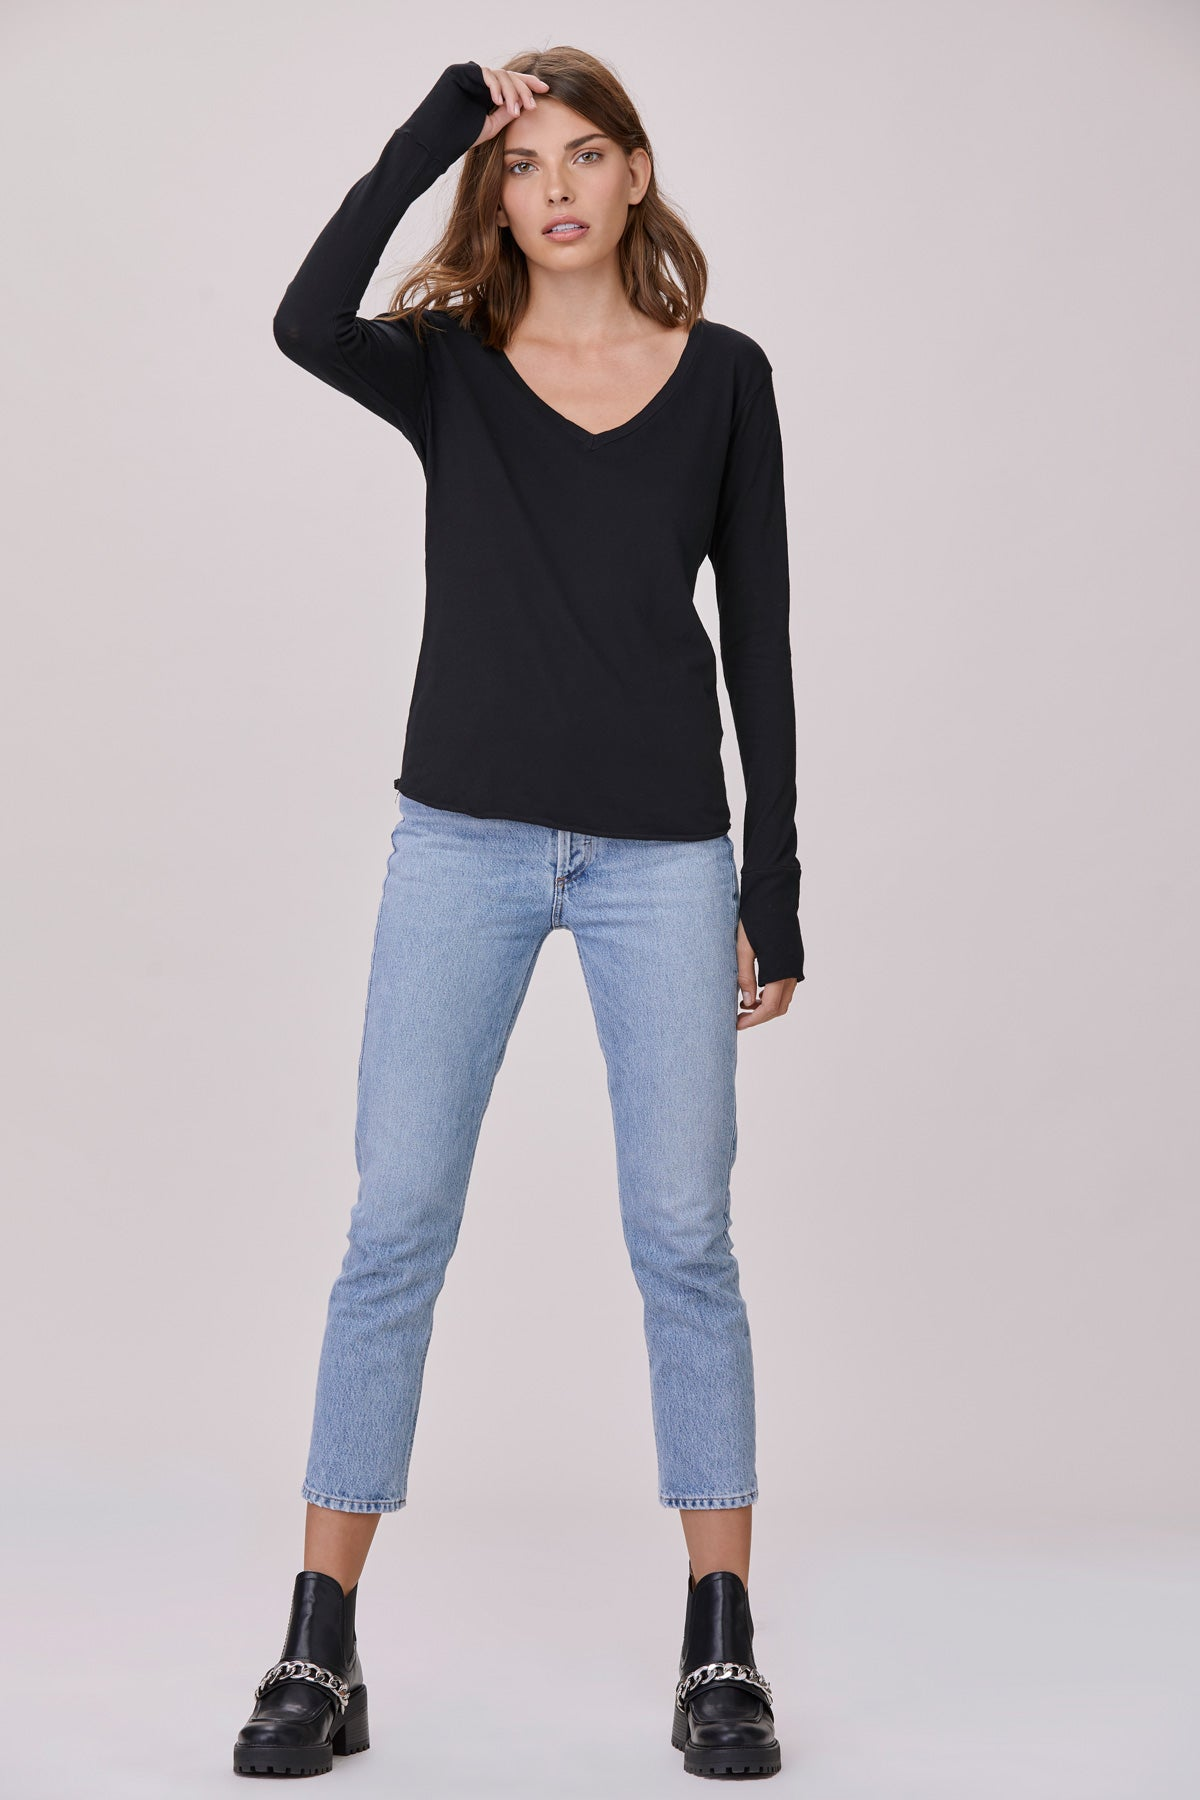 LNA Black Long Sleeve V Neck Tee with thumbholes